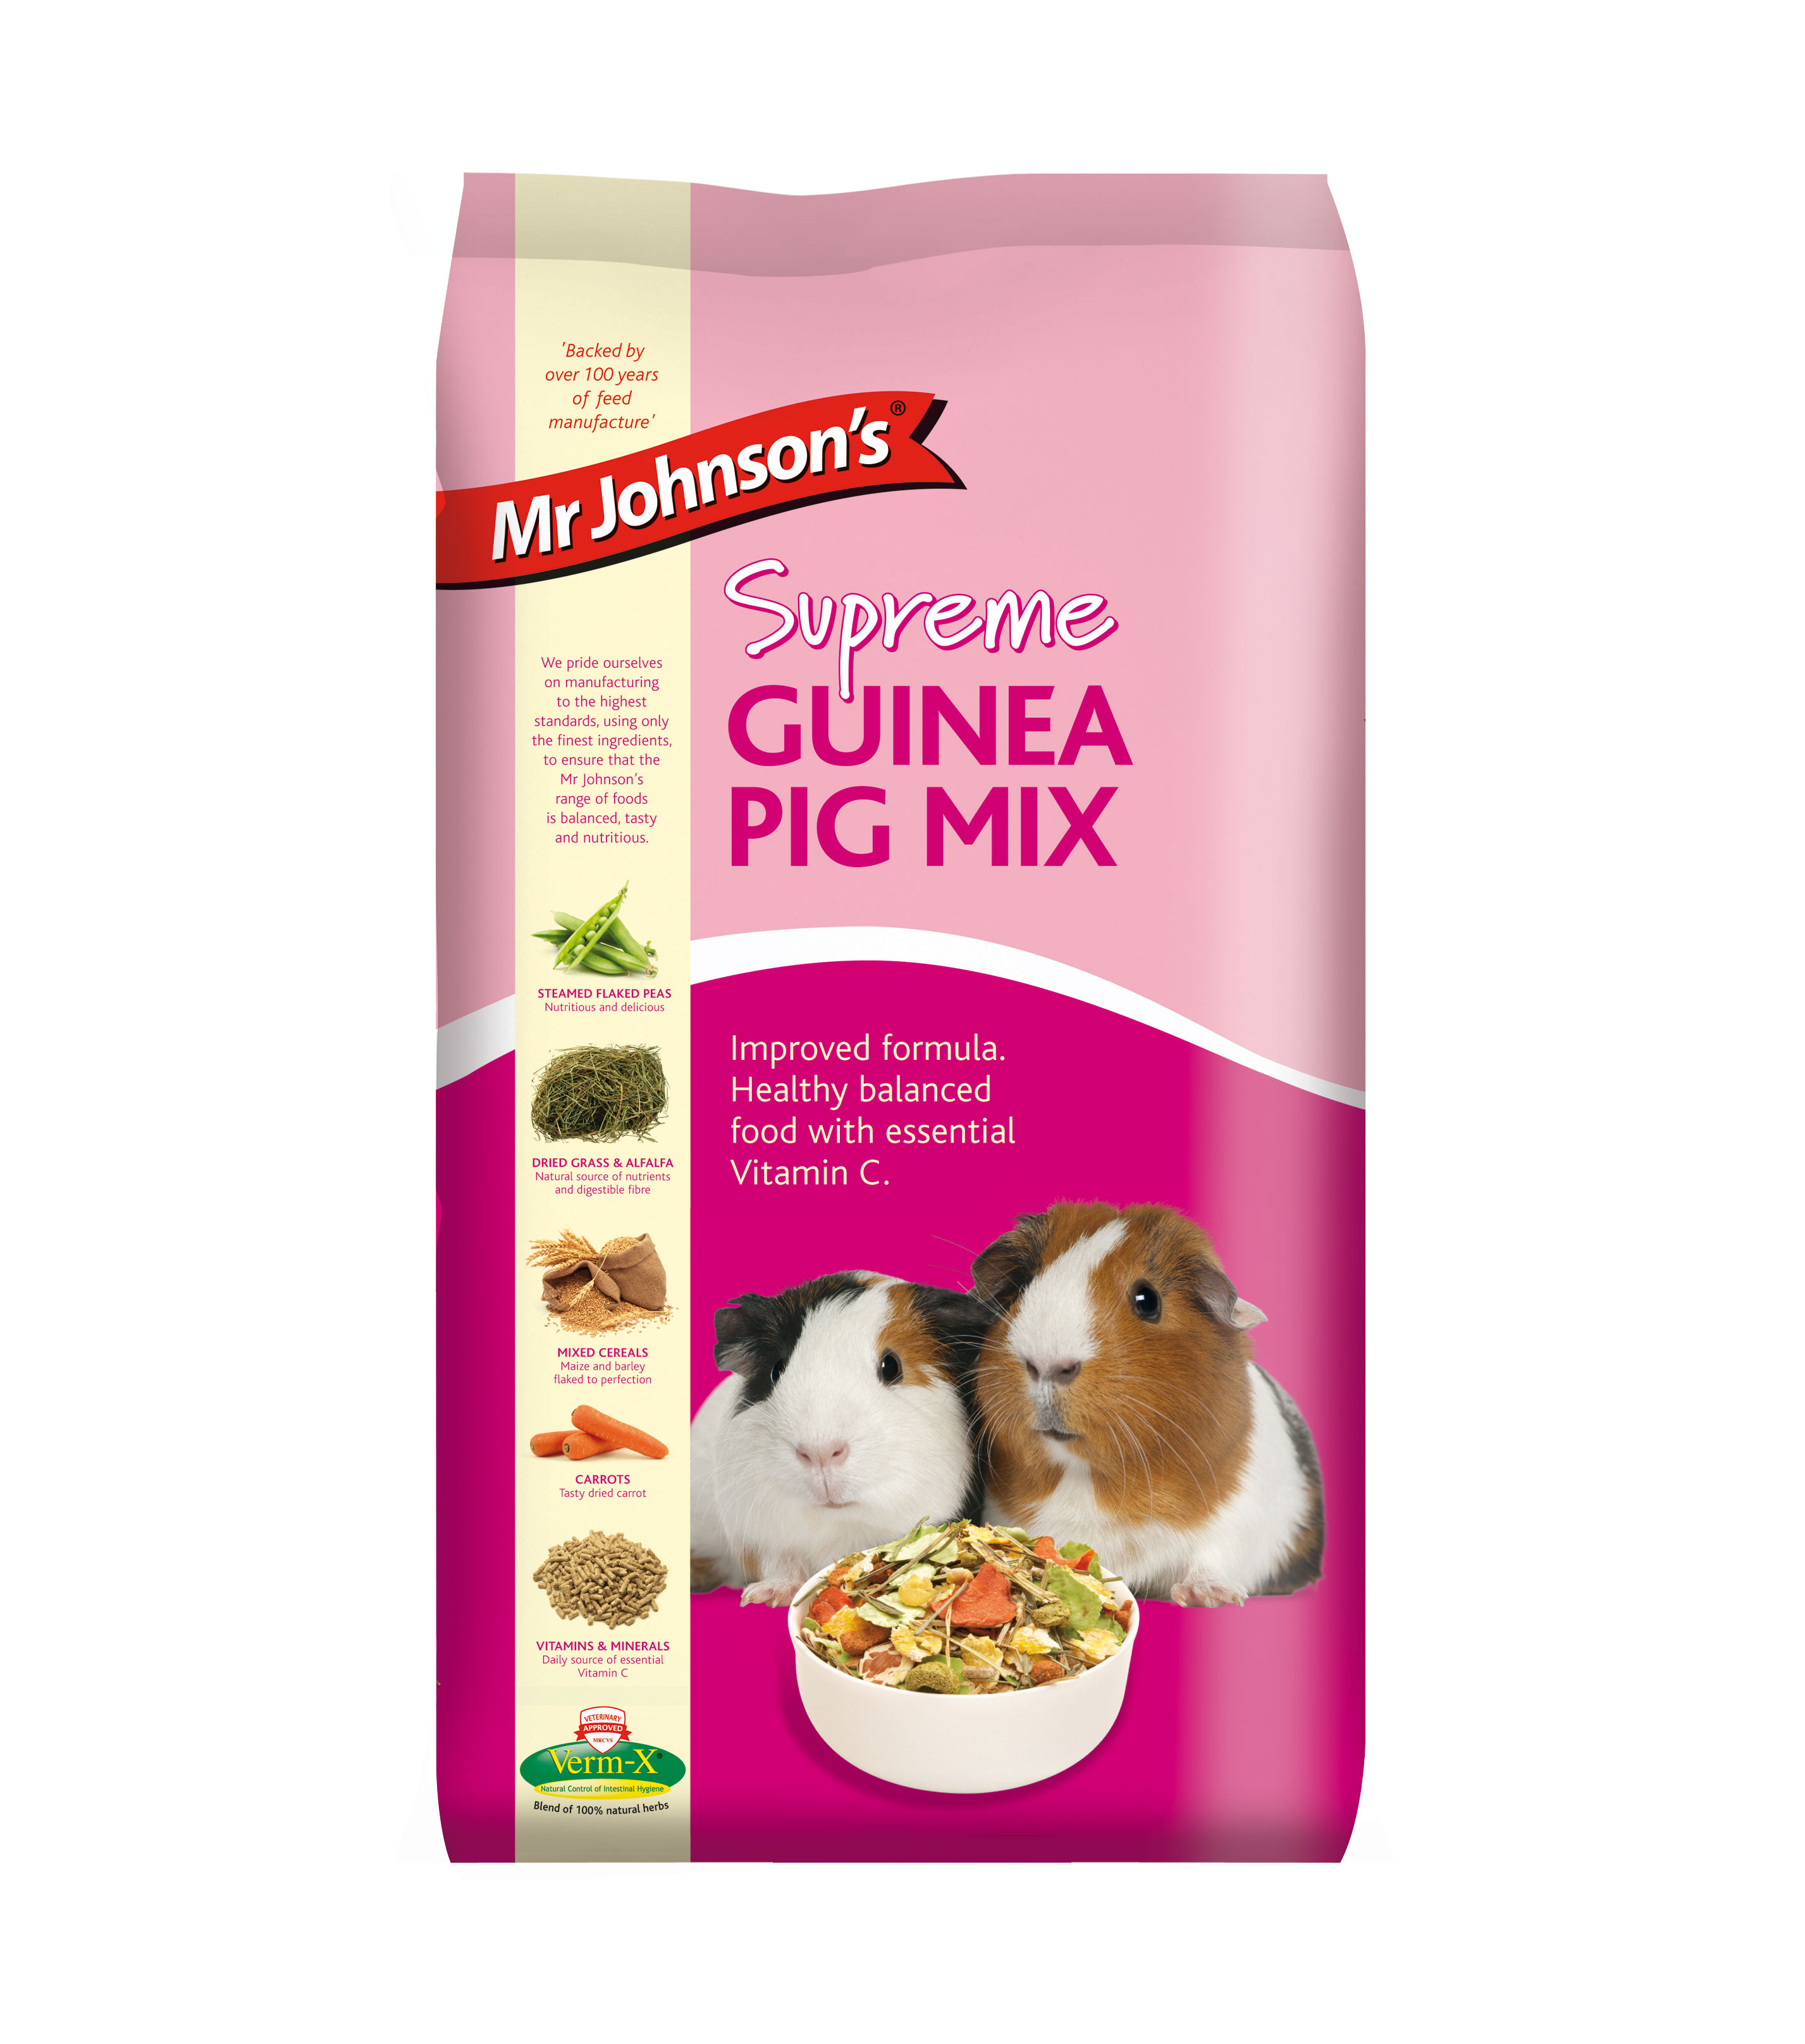 Mr Johnson's Supreme Guinea Pig Mix